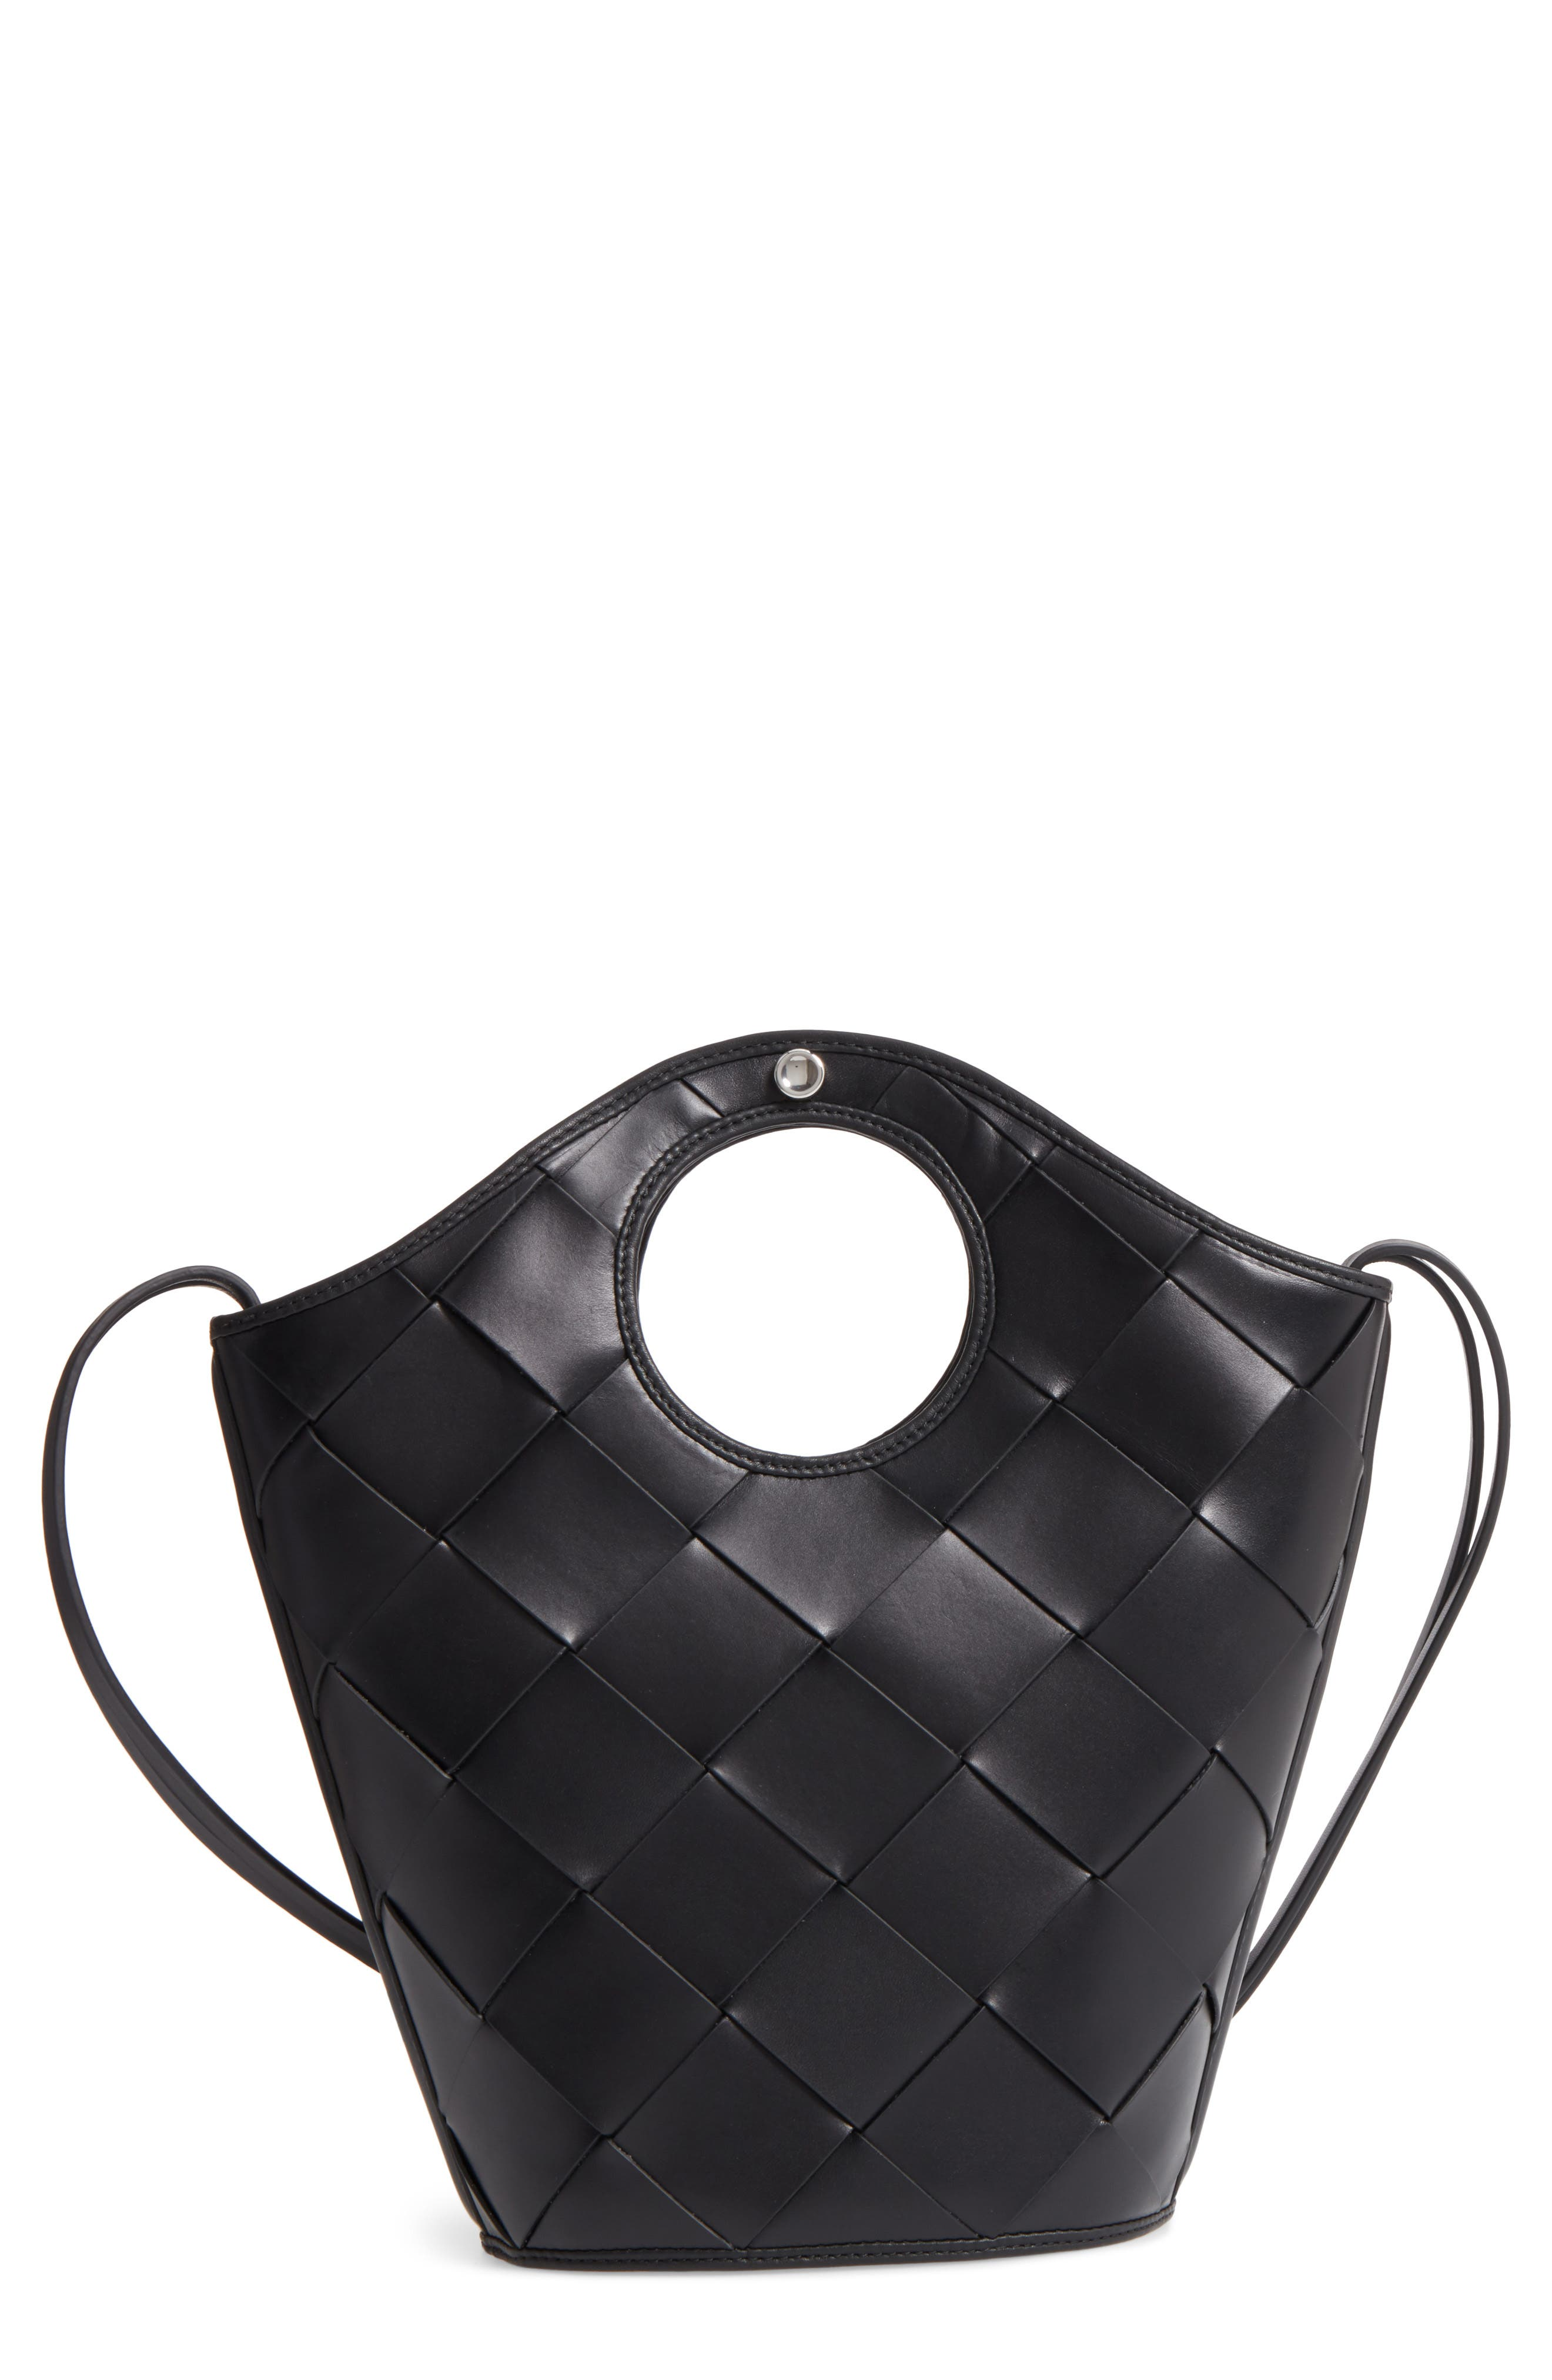 Alternate Image 1 Selected - Elizabeth and James Small Market Woven Leather Crossbody Shopper